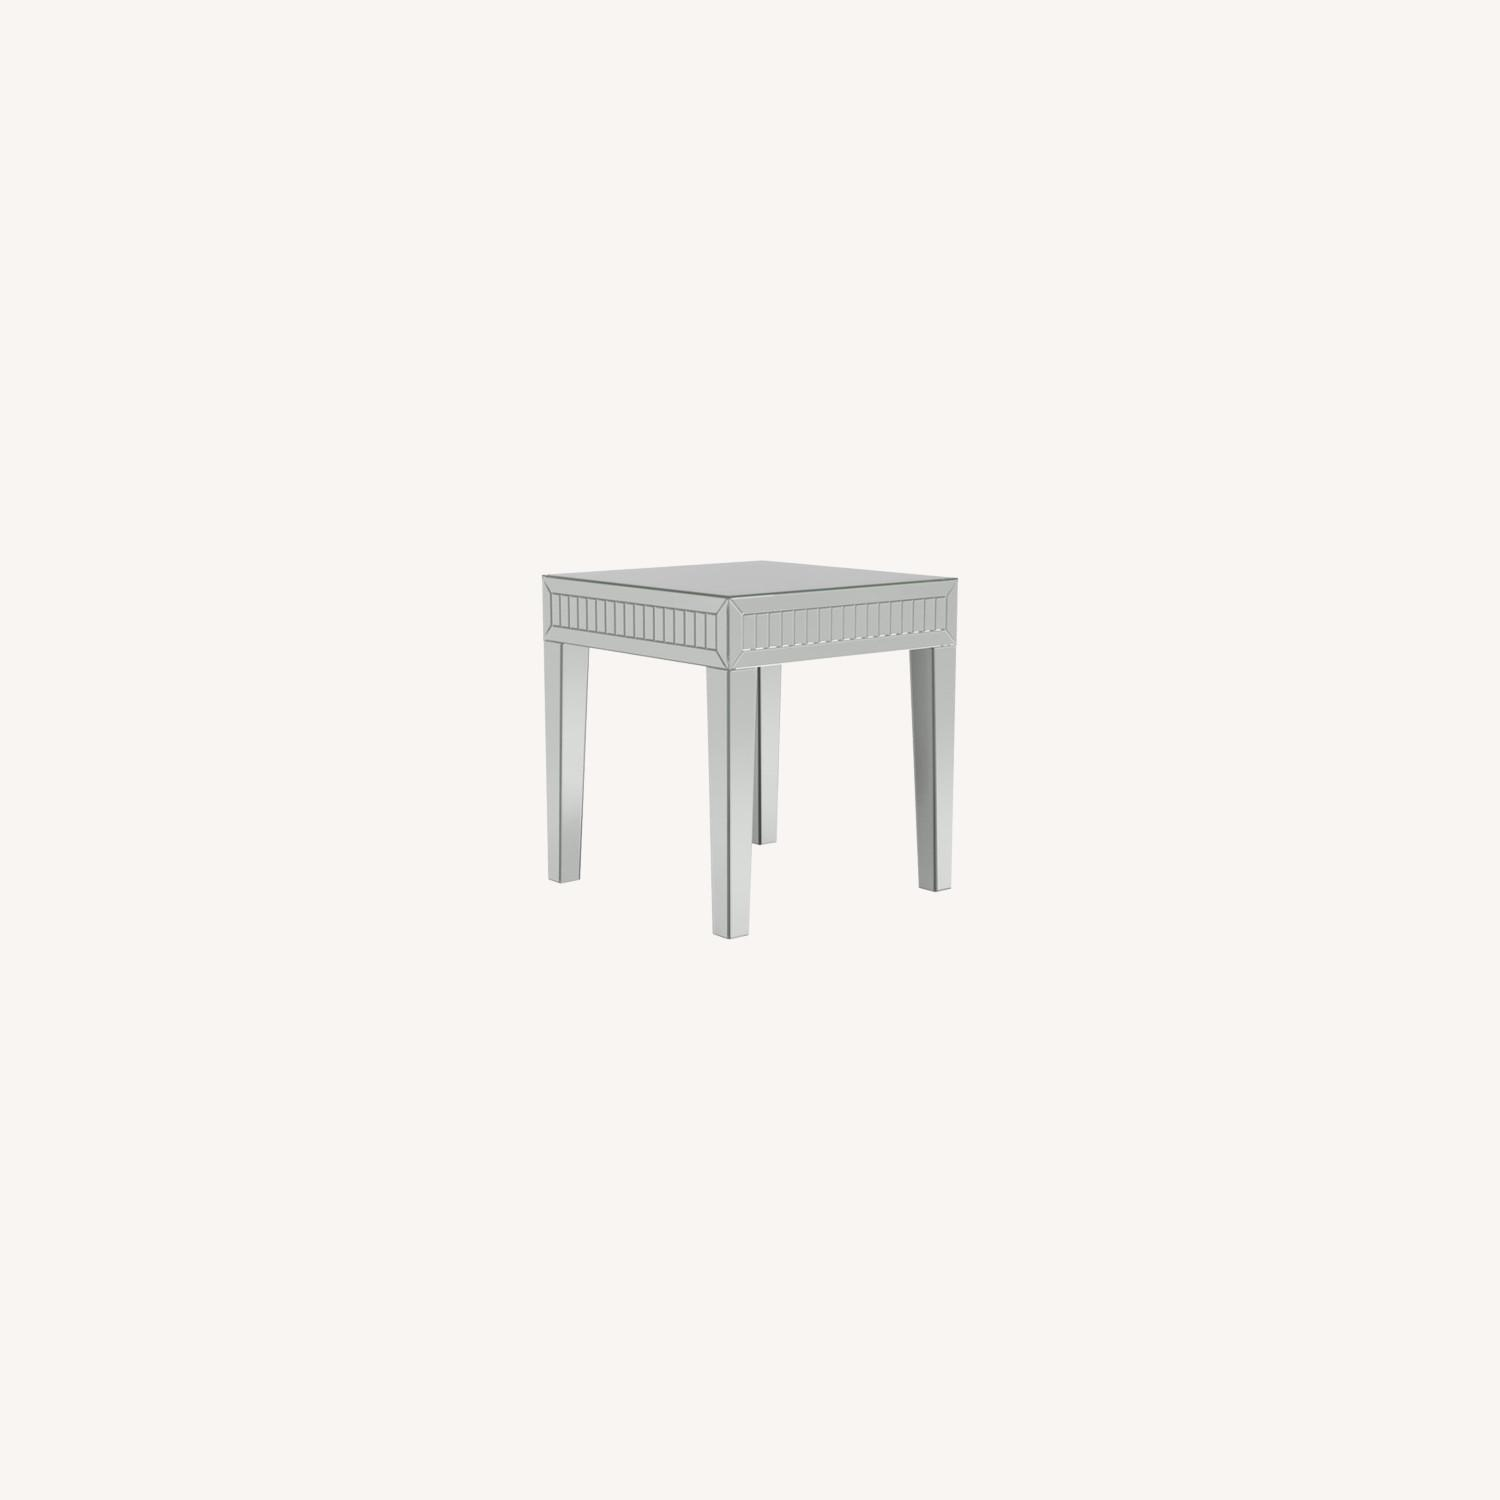 Ultra-Glam Side Table In Silver Finish - image-4